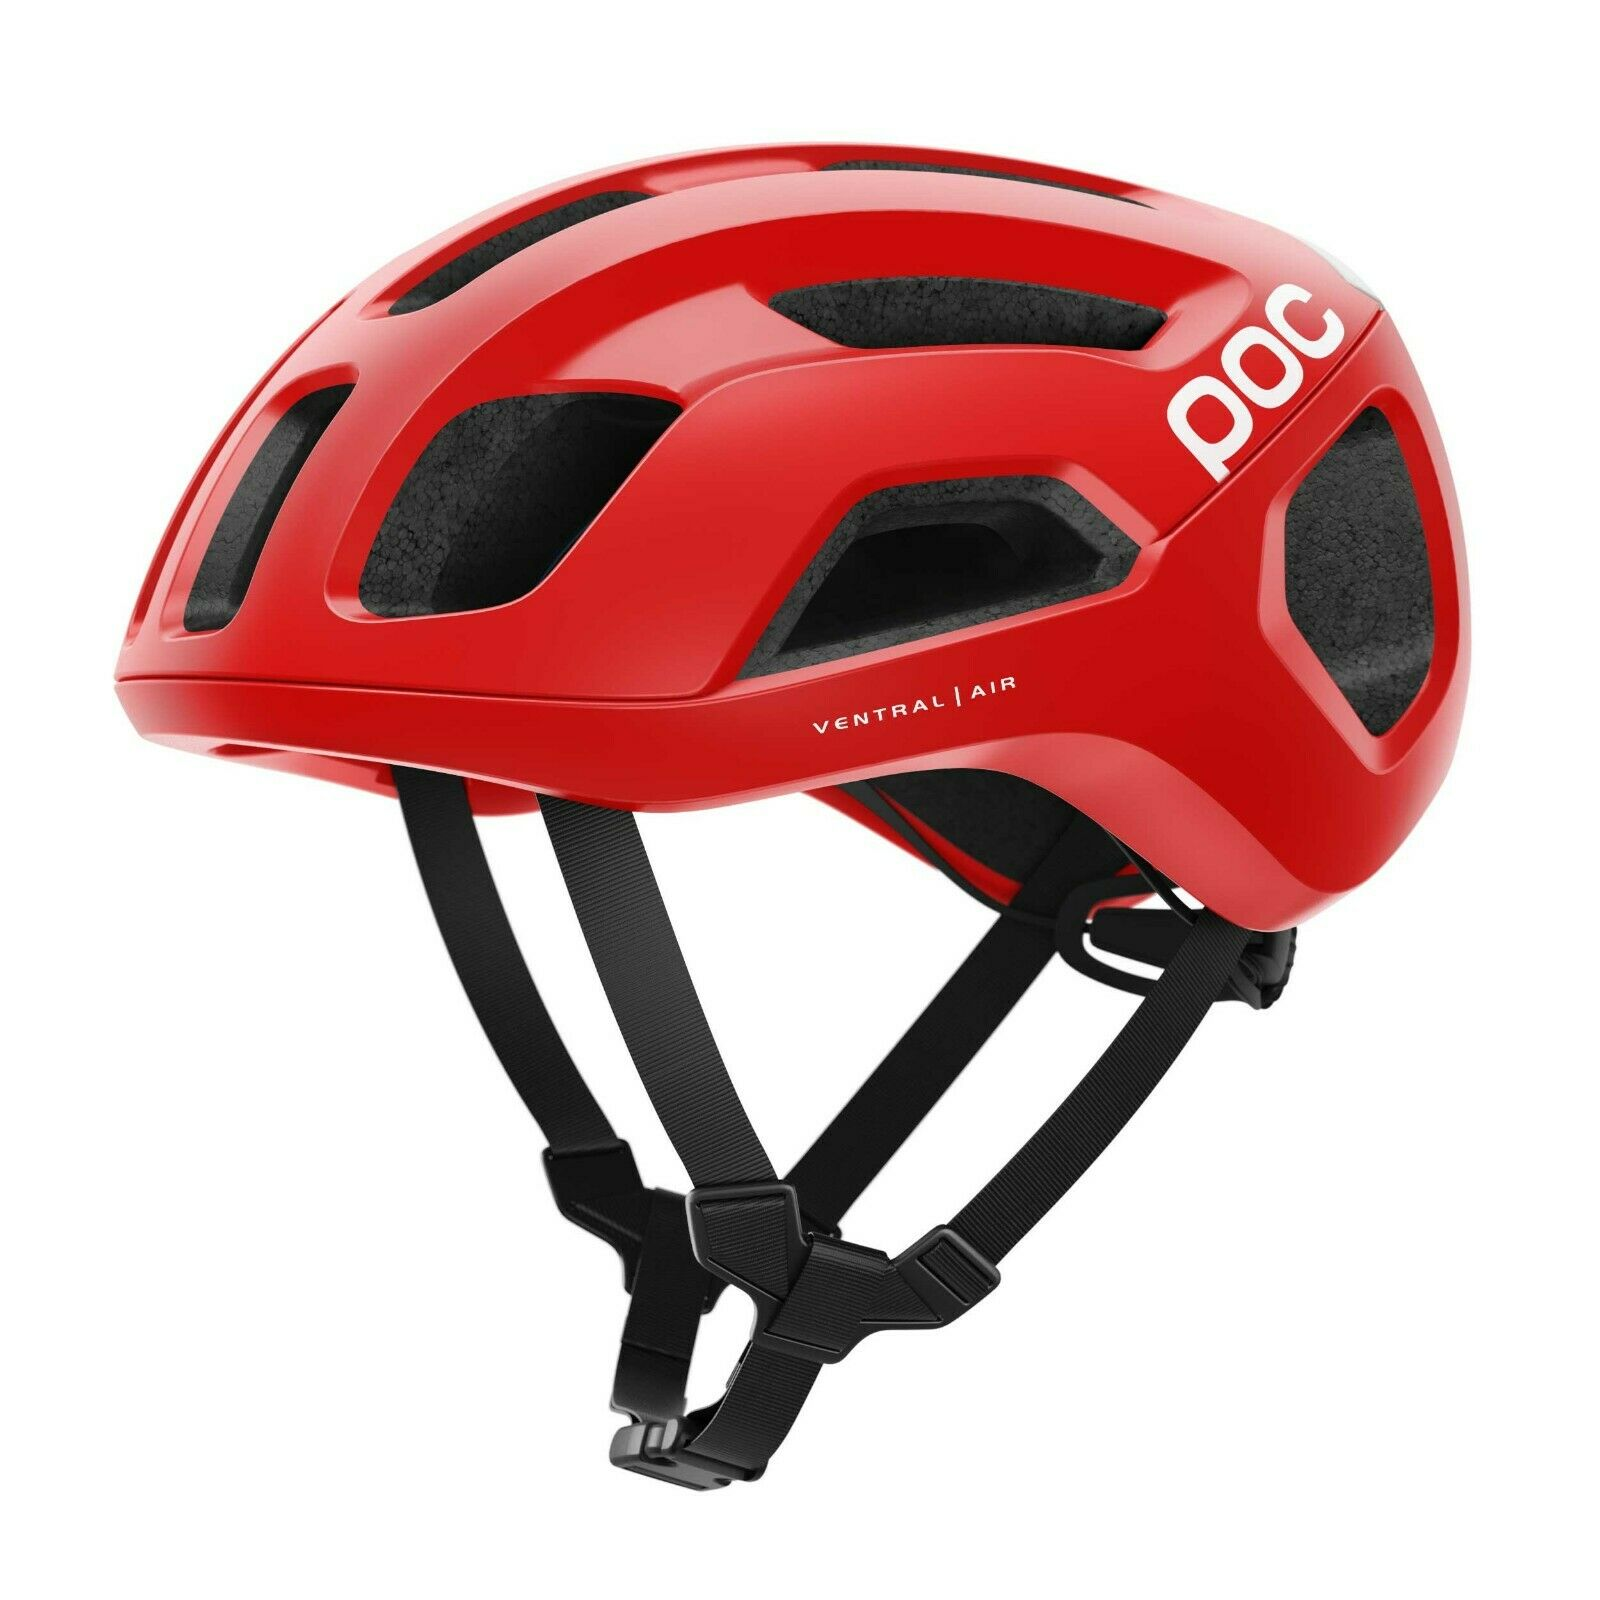 POC Ventral Air Spin Cycling Helmet - 2019